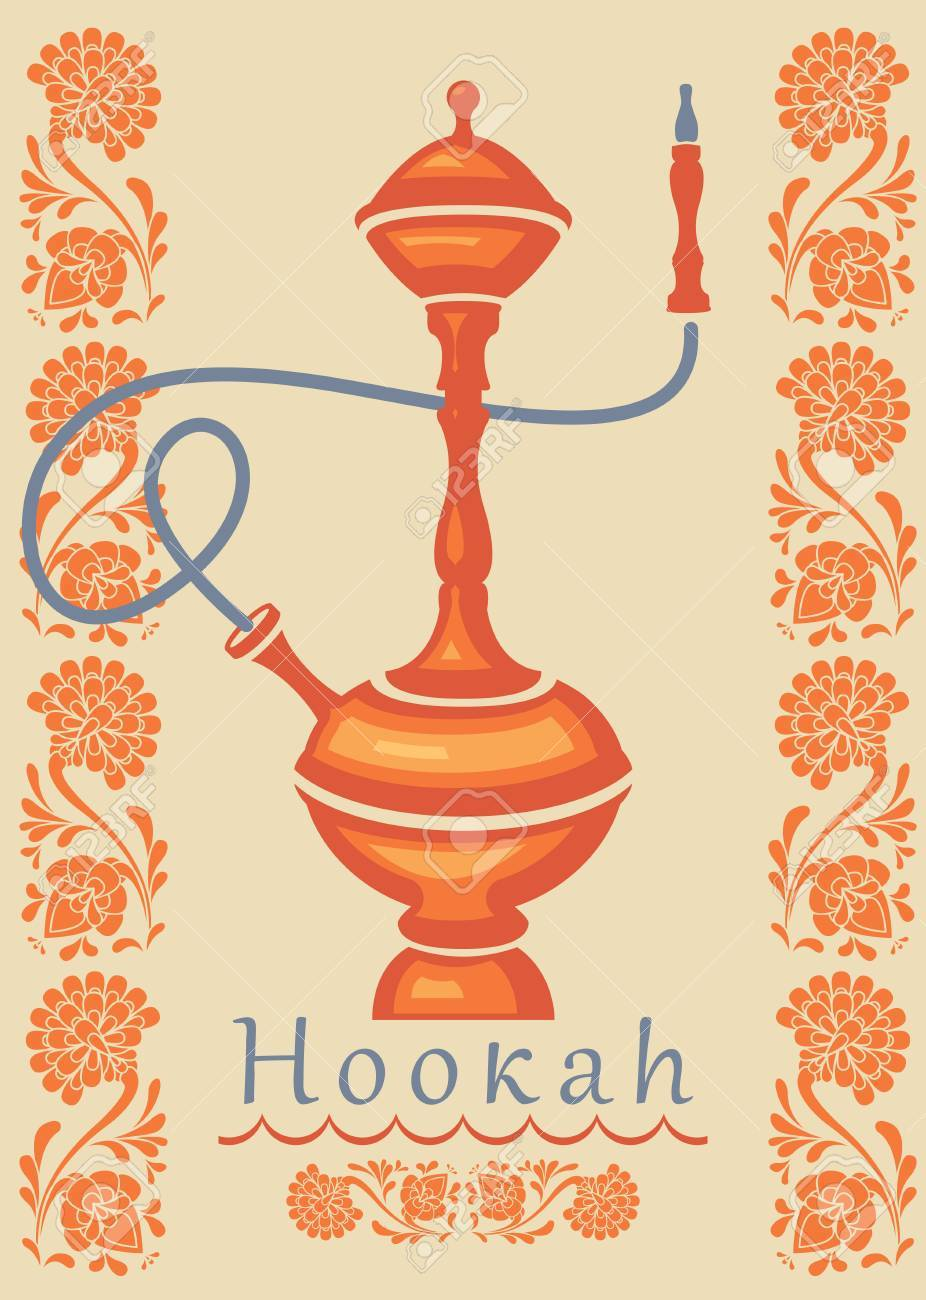 Hookah Logo Vector Illustration Hand Drawn Flower Arabic Islamic Royalty Free Cliparts Vectors And Stock Illustration Image 82008343